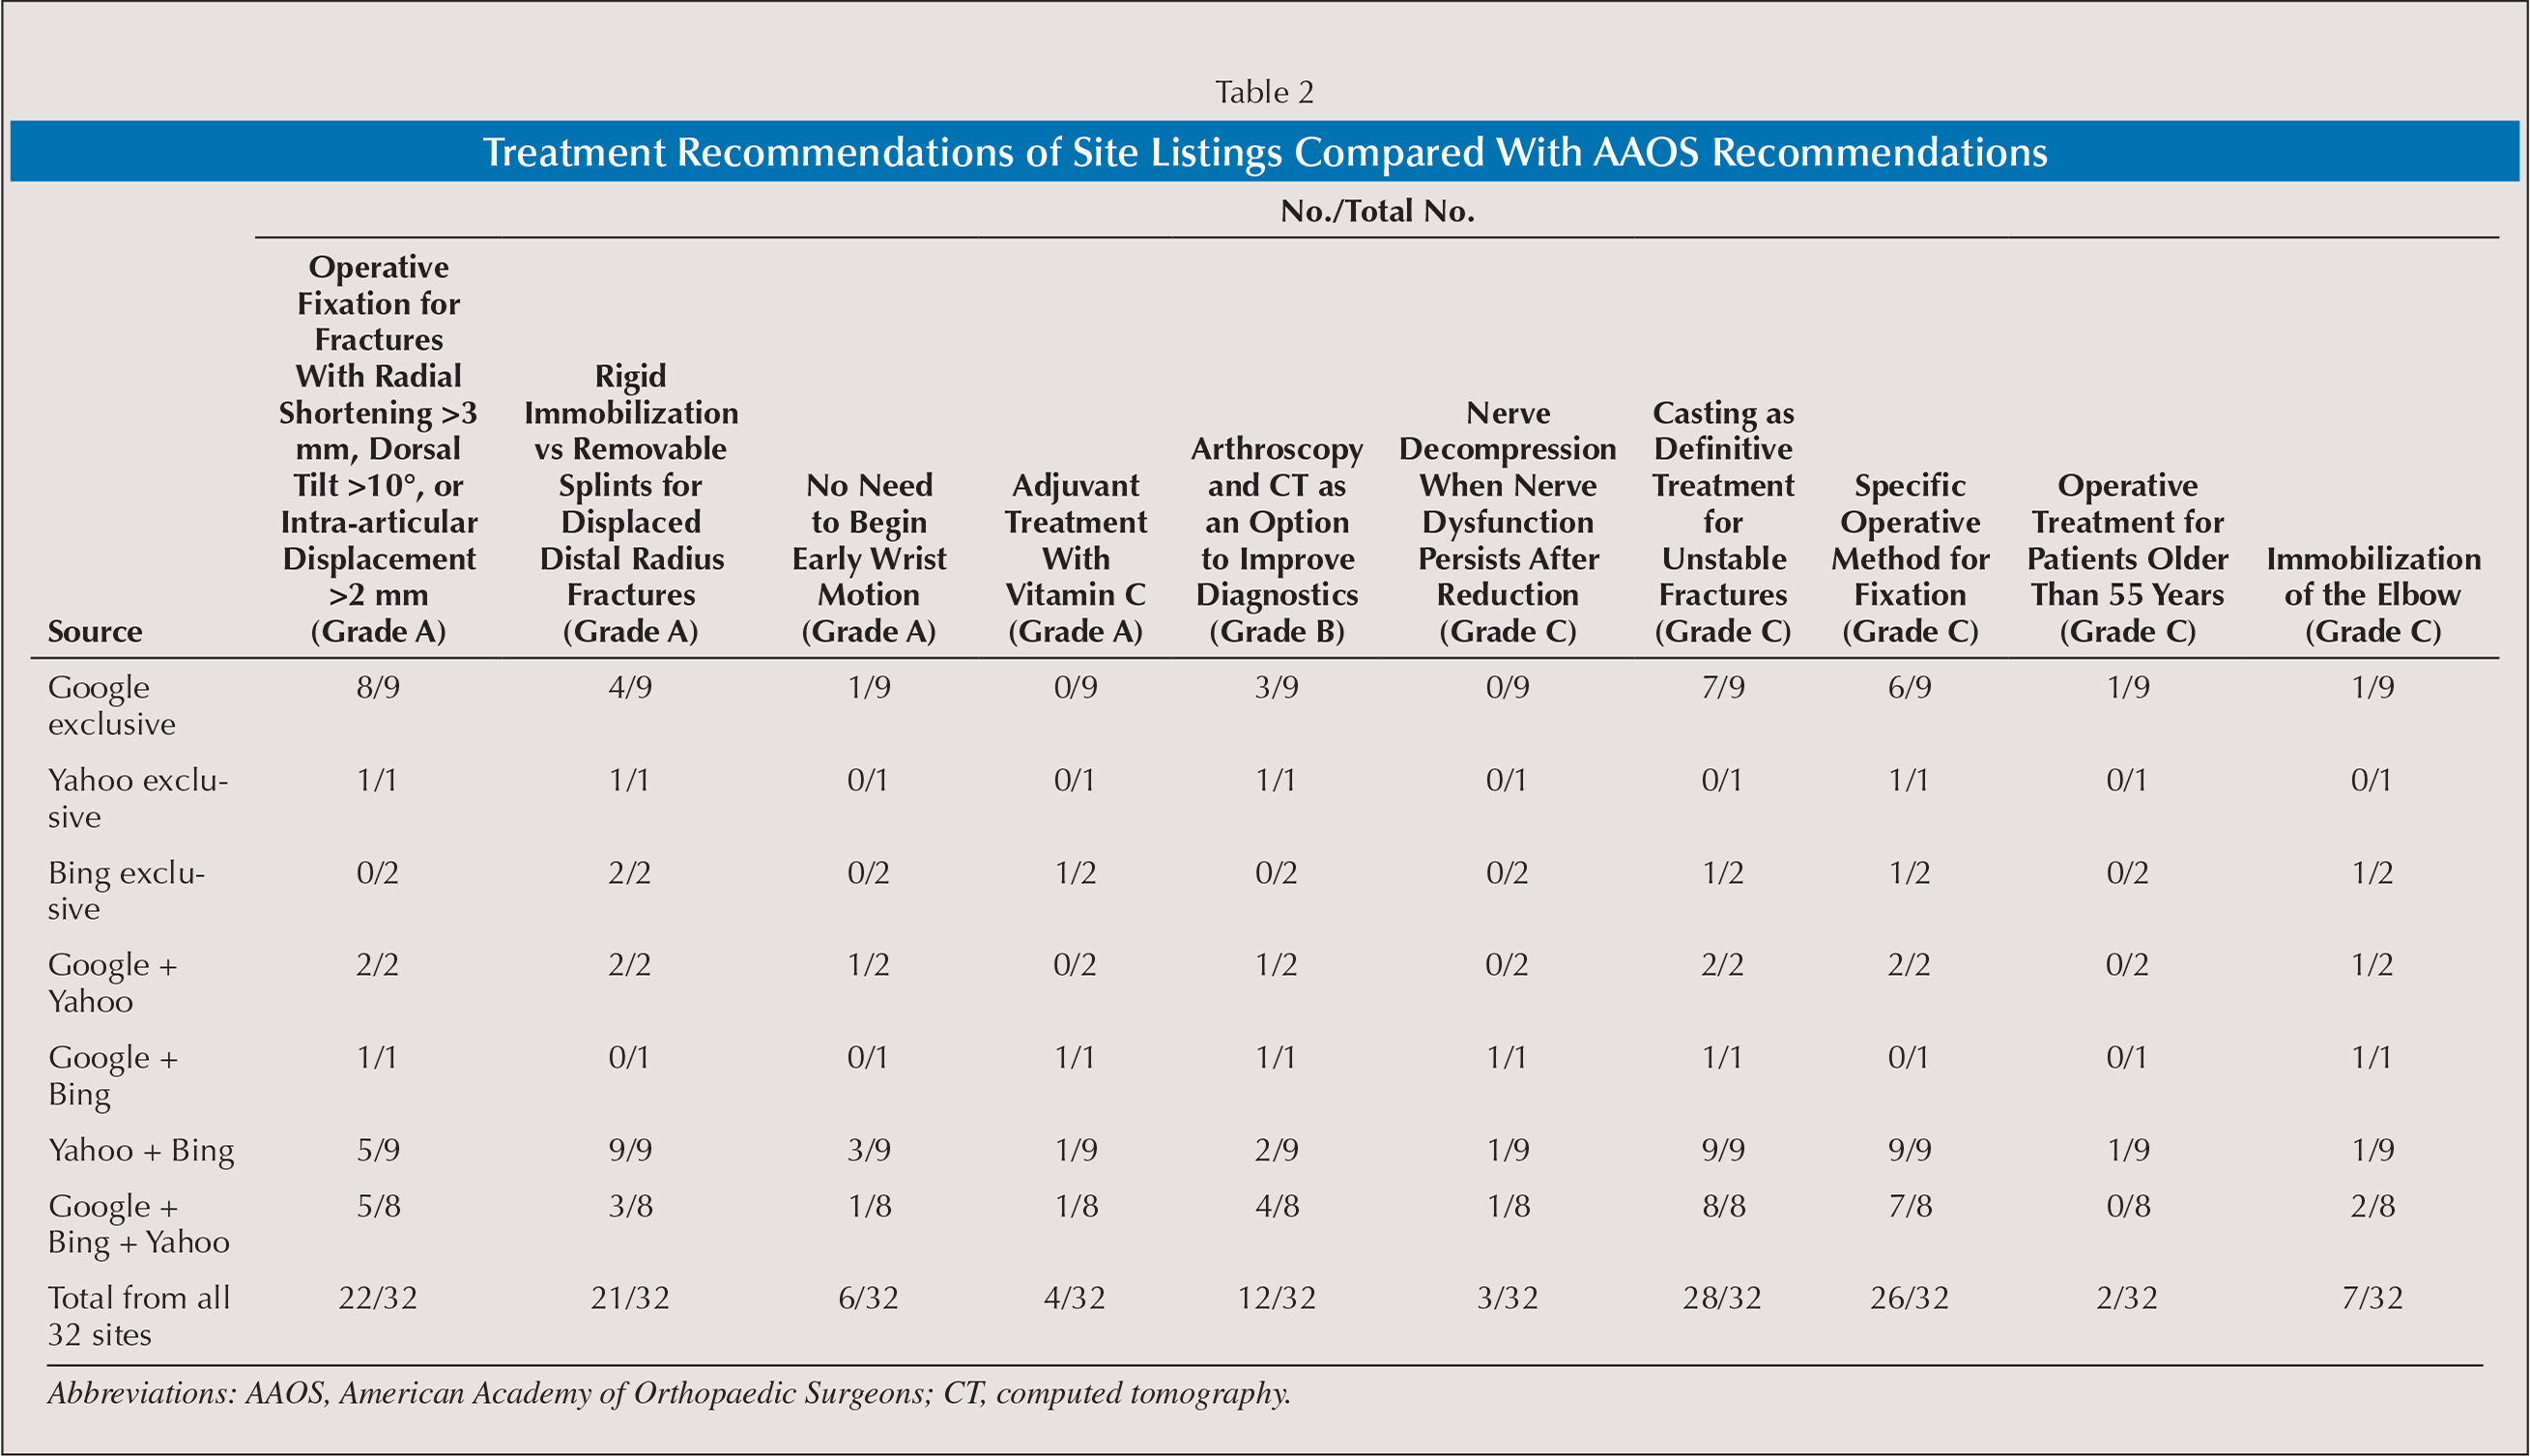 Treatment Recommendations of Site Listings Compared With AAOS Recommendations